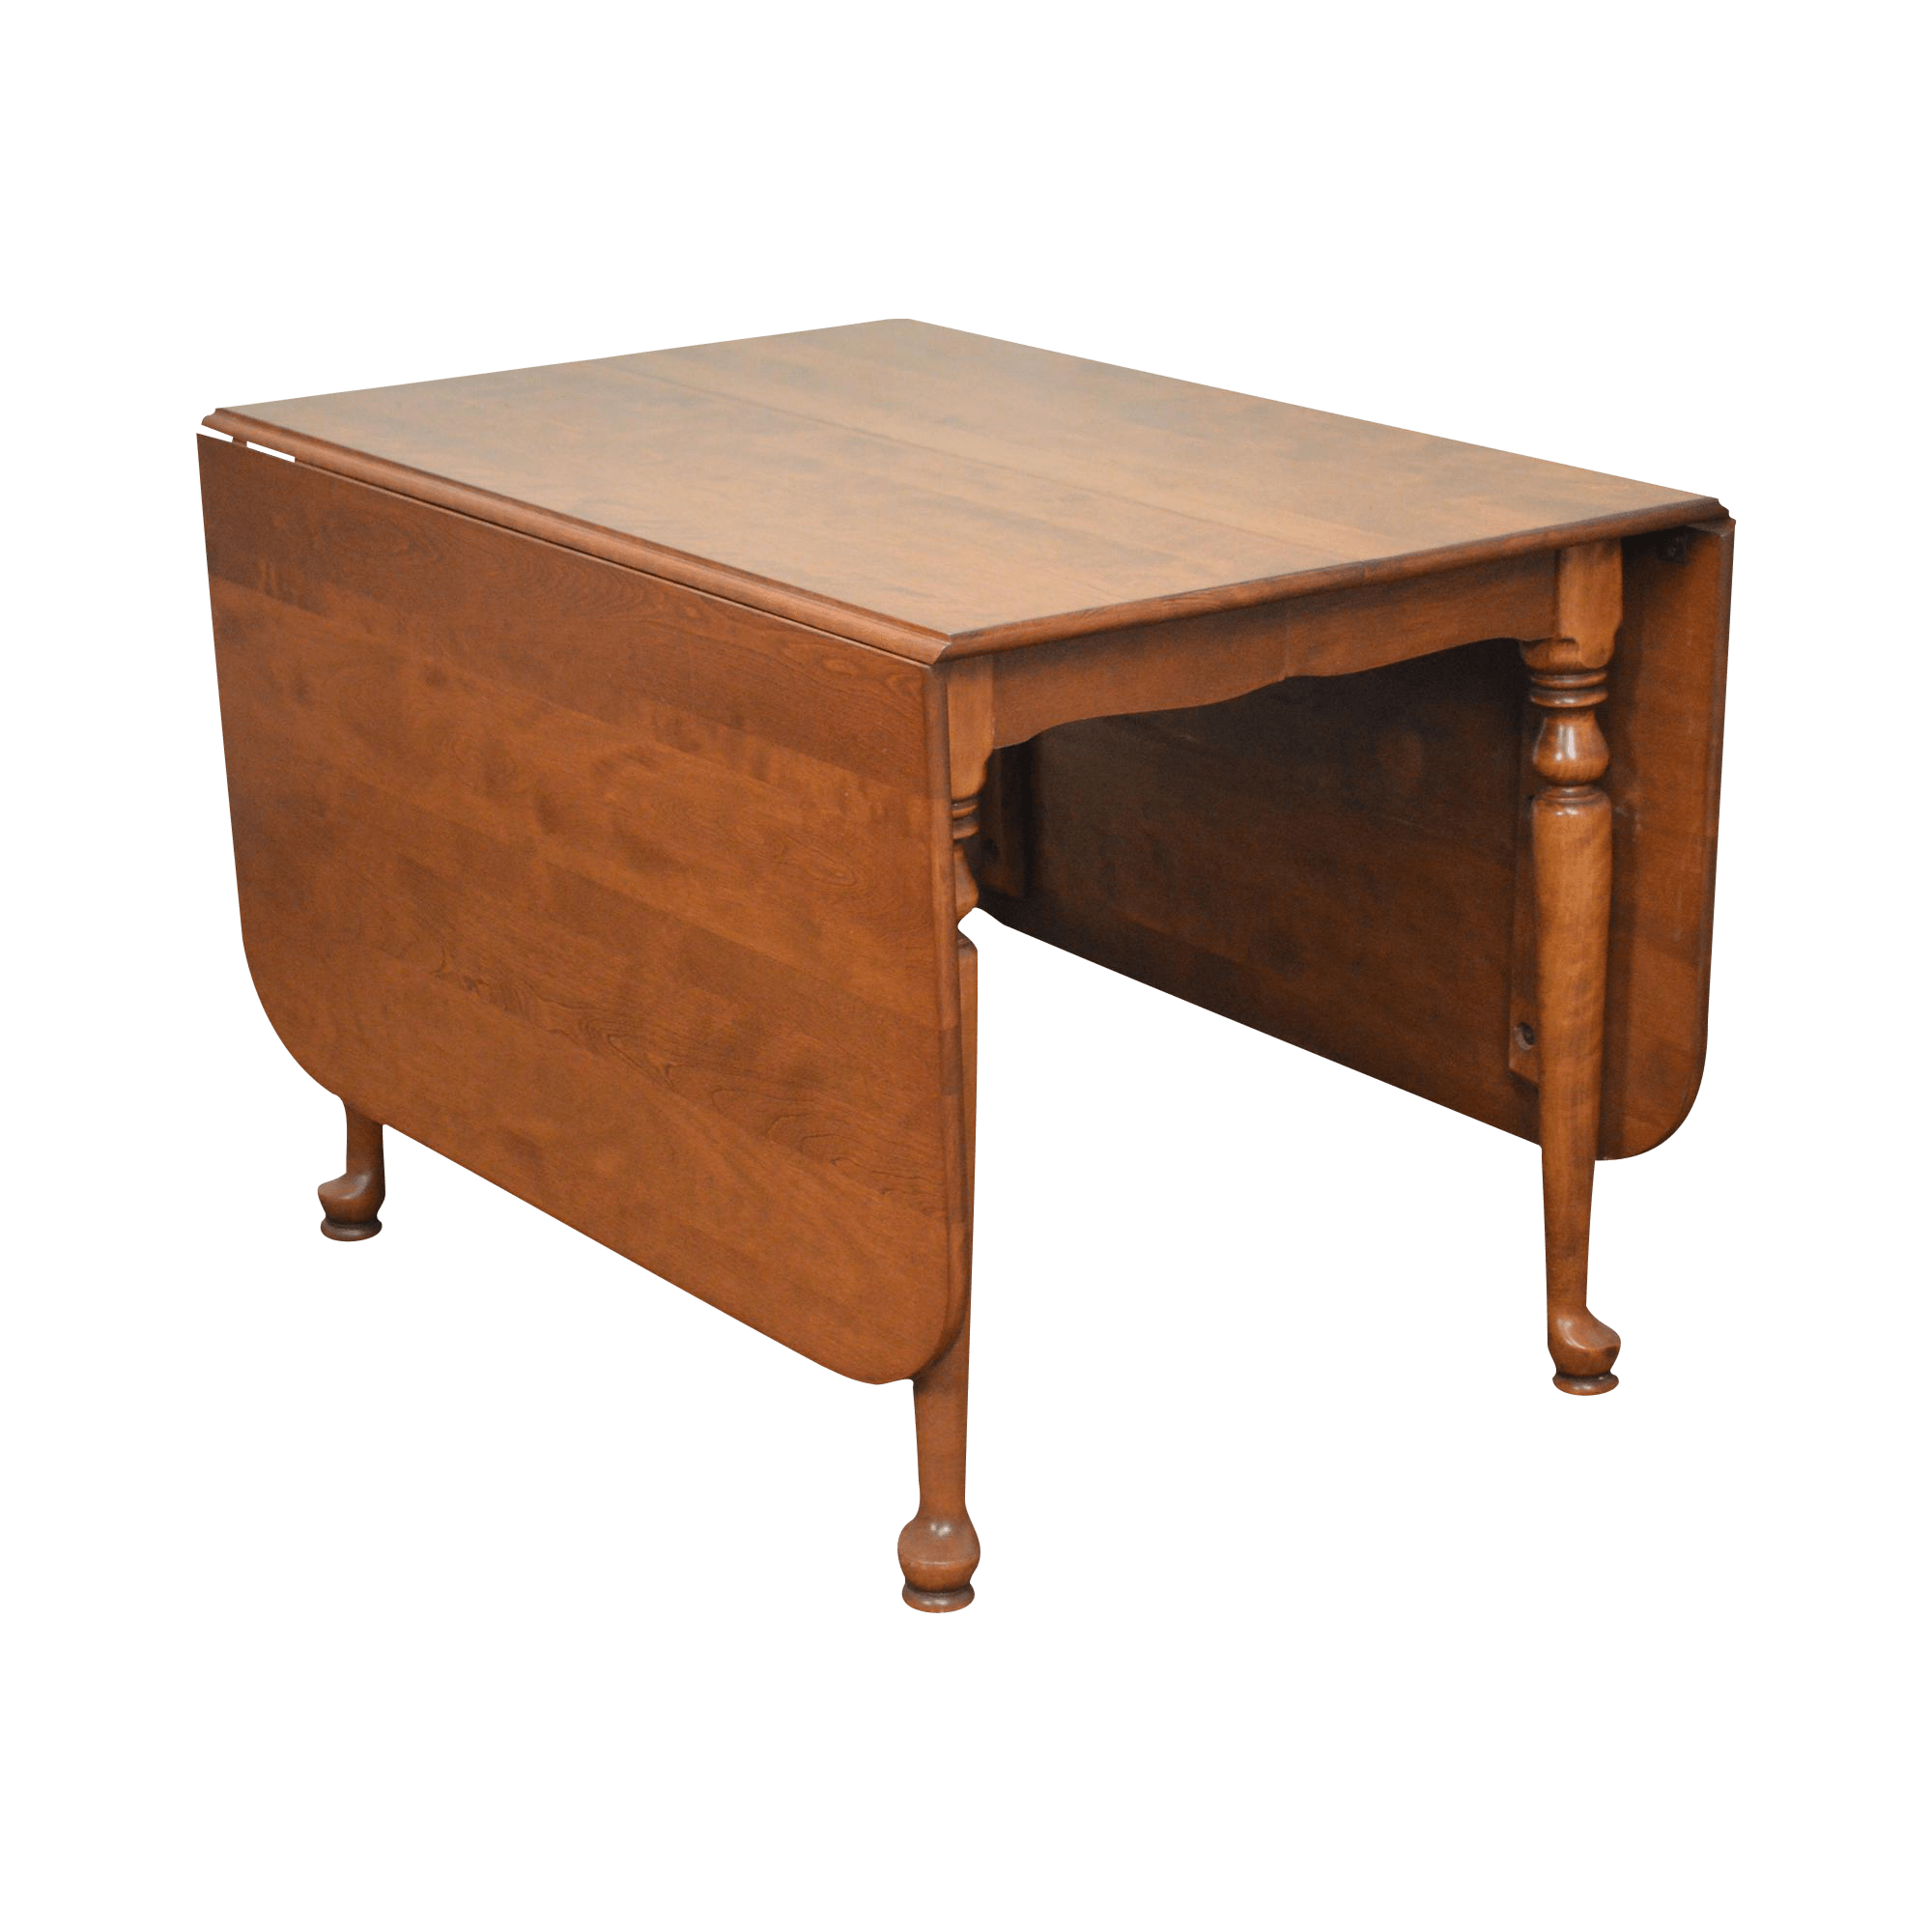 Gently Used Ethan Allen Furniture Save Up To 50 At Chairish